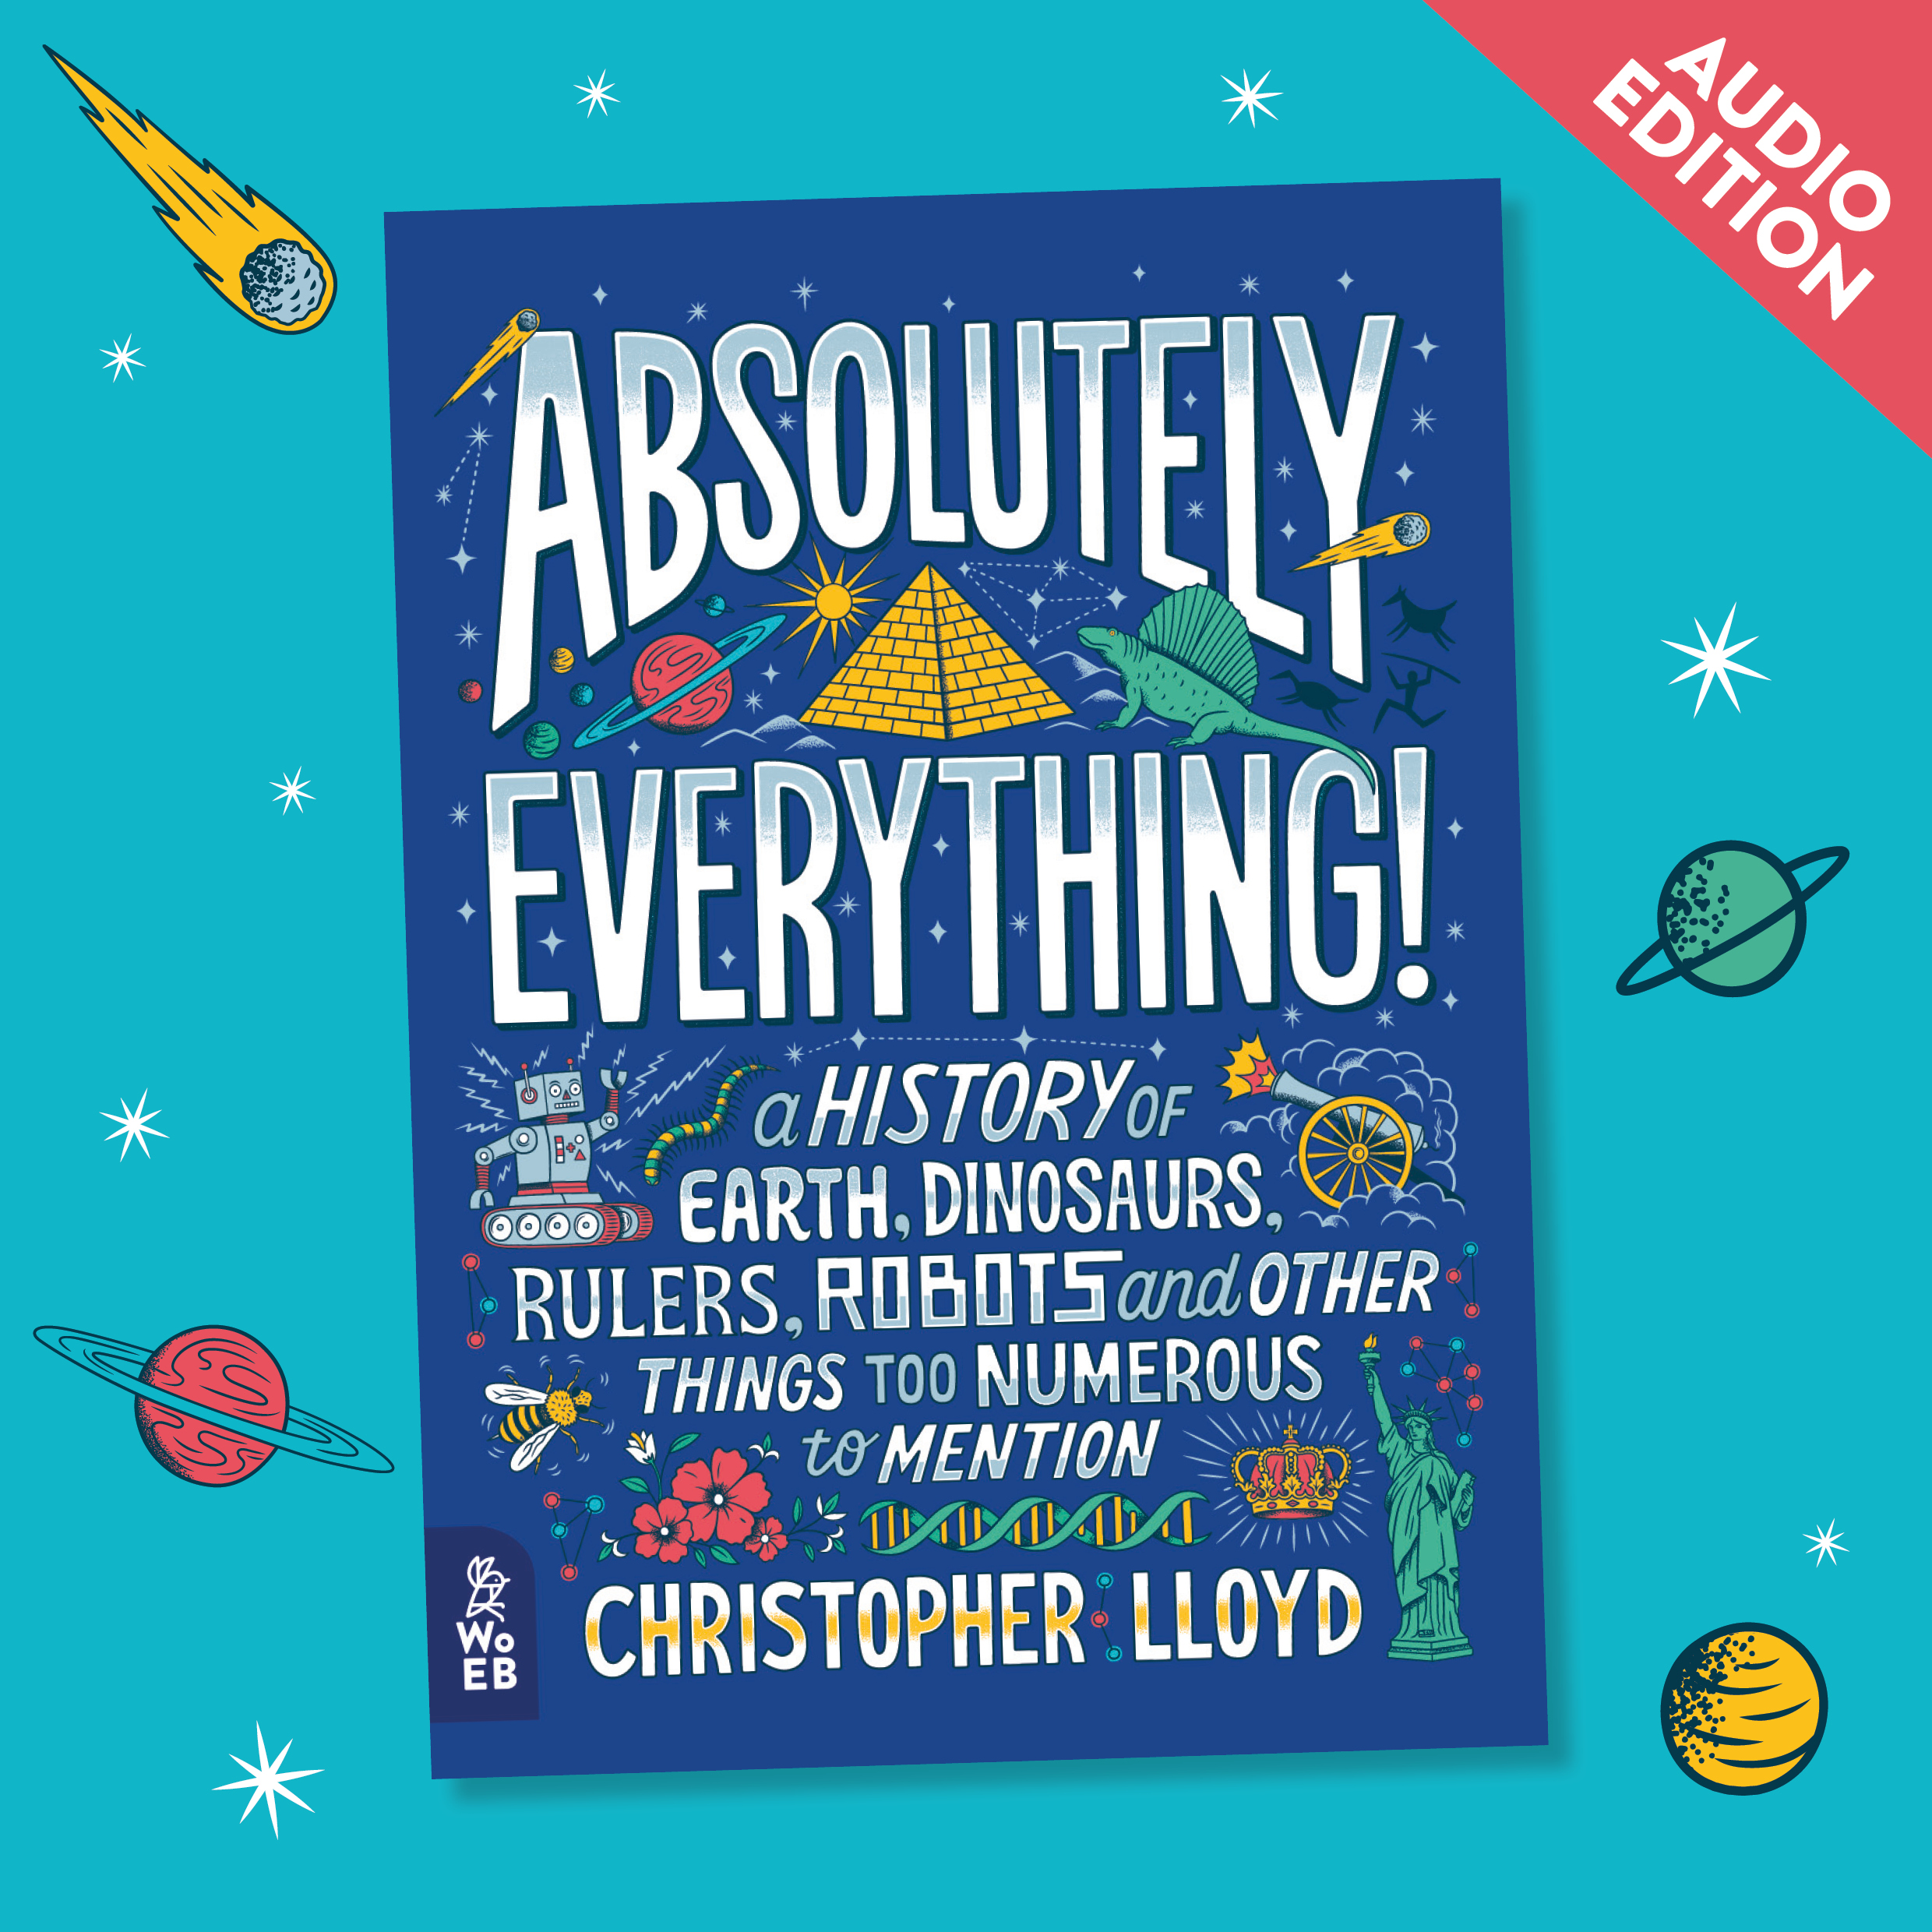 Announcing: <b><i>The Absolutely Everything!</i> Audiobook Edition</b>